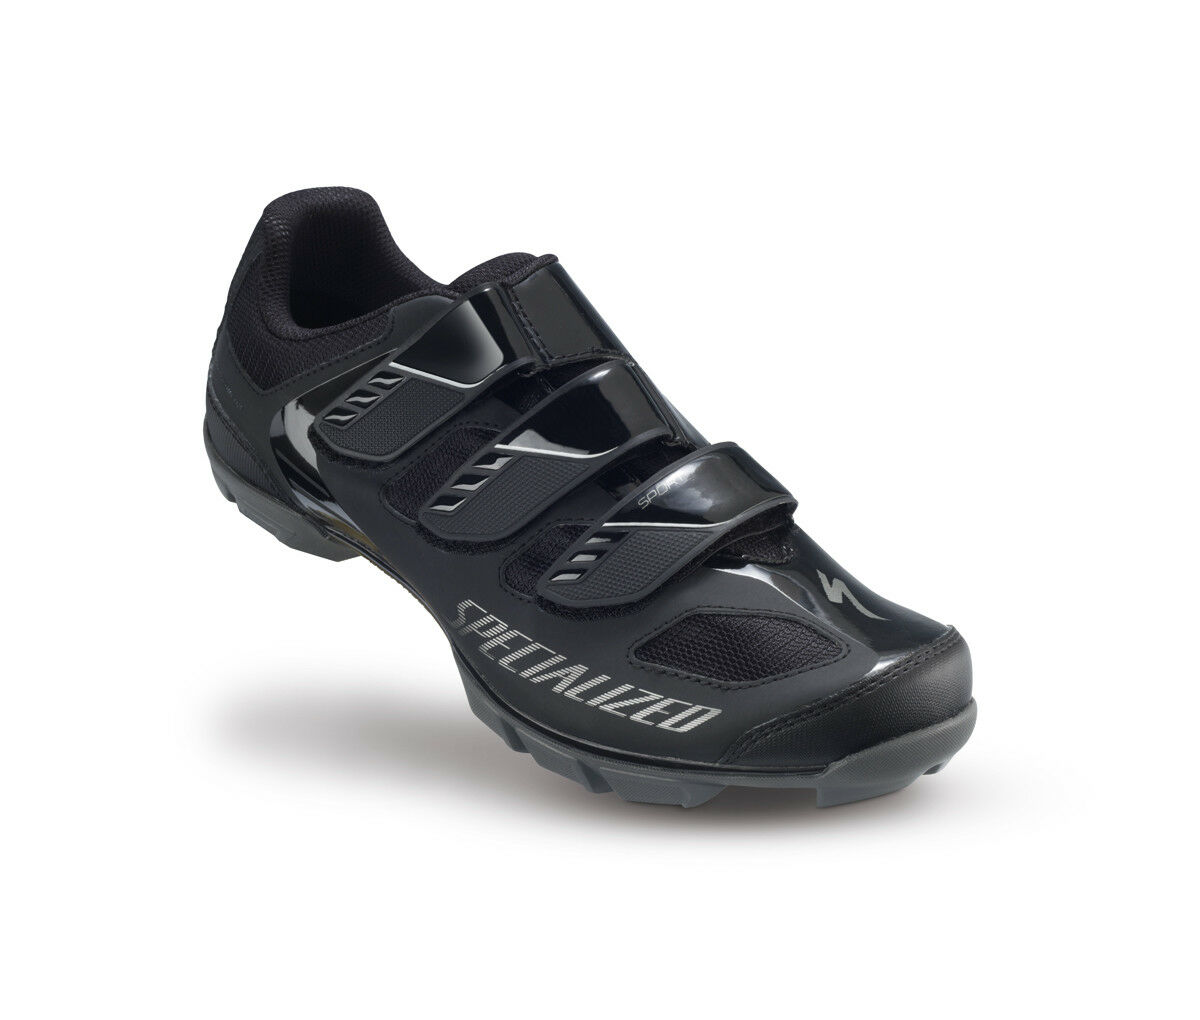 61114-5038: Specialized Sport MTB Shoes Size 38